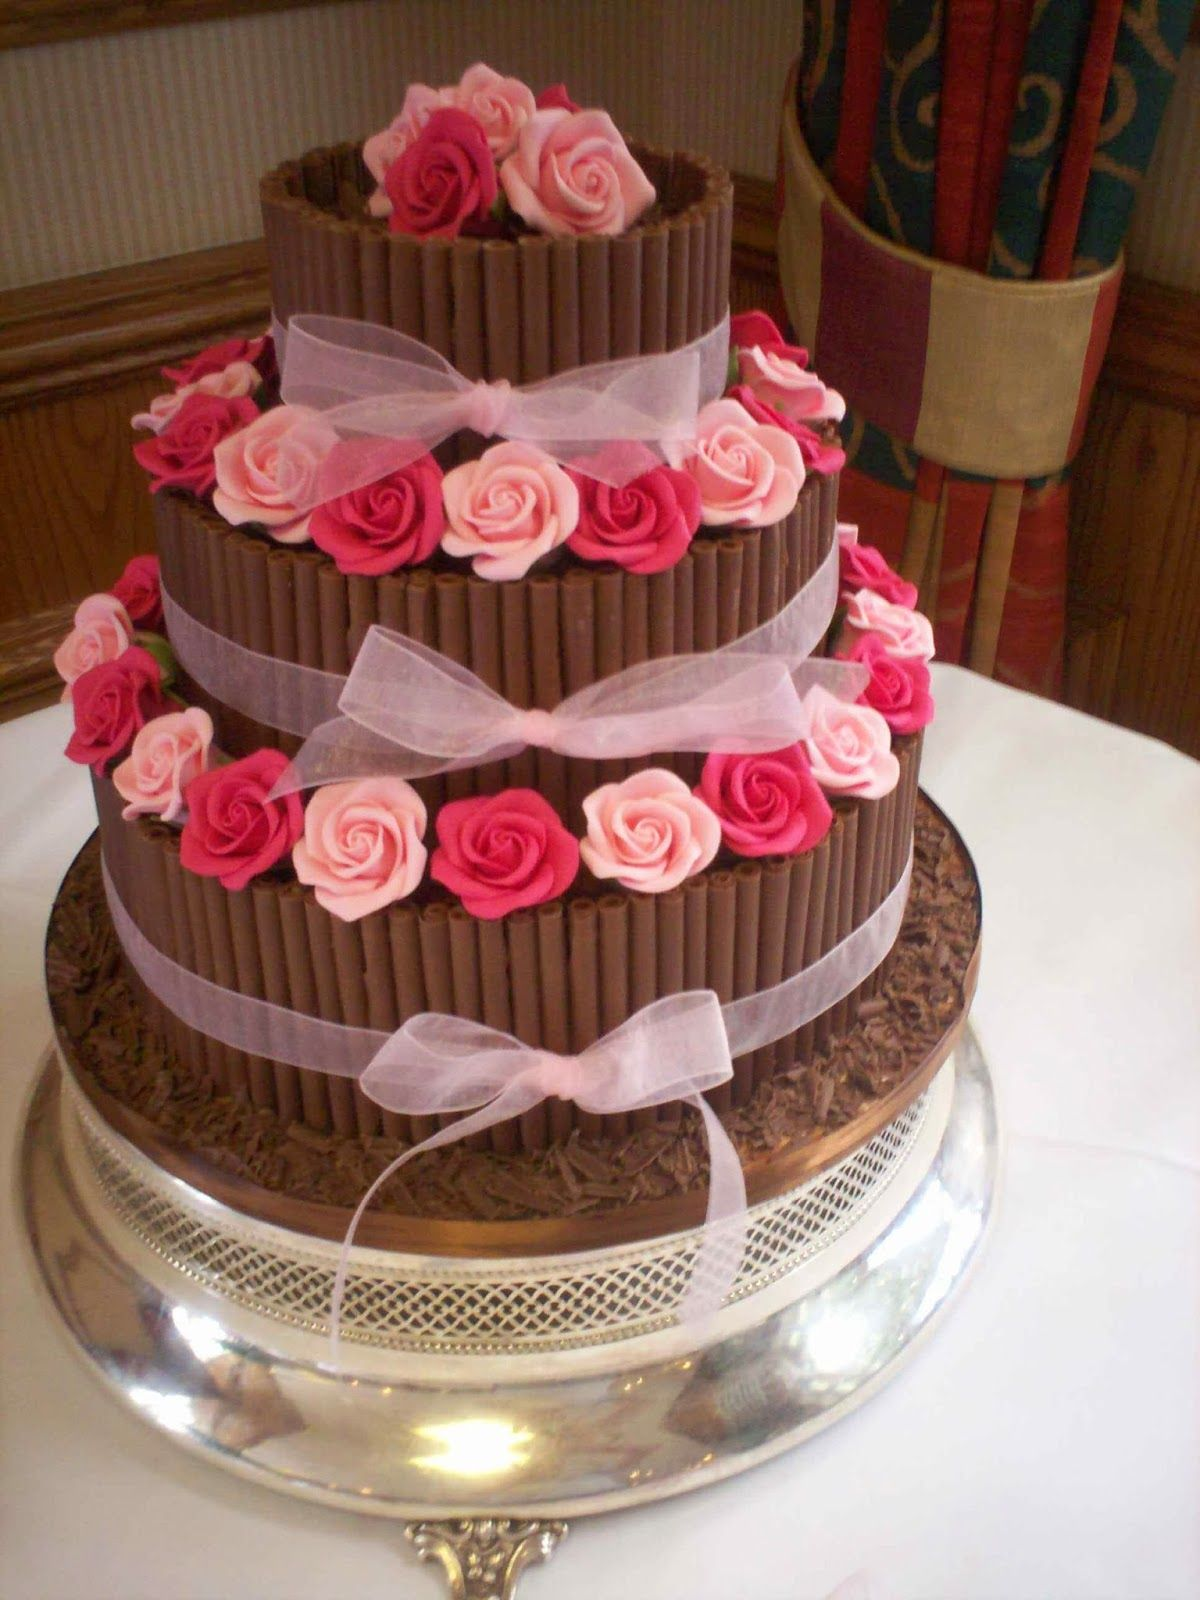 Pleasing Chocolate Cake Hd Wallpapers Free Download Com Imagens Bolo De Funny Birthday Cards Online Overcheapnameinfo